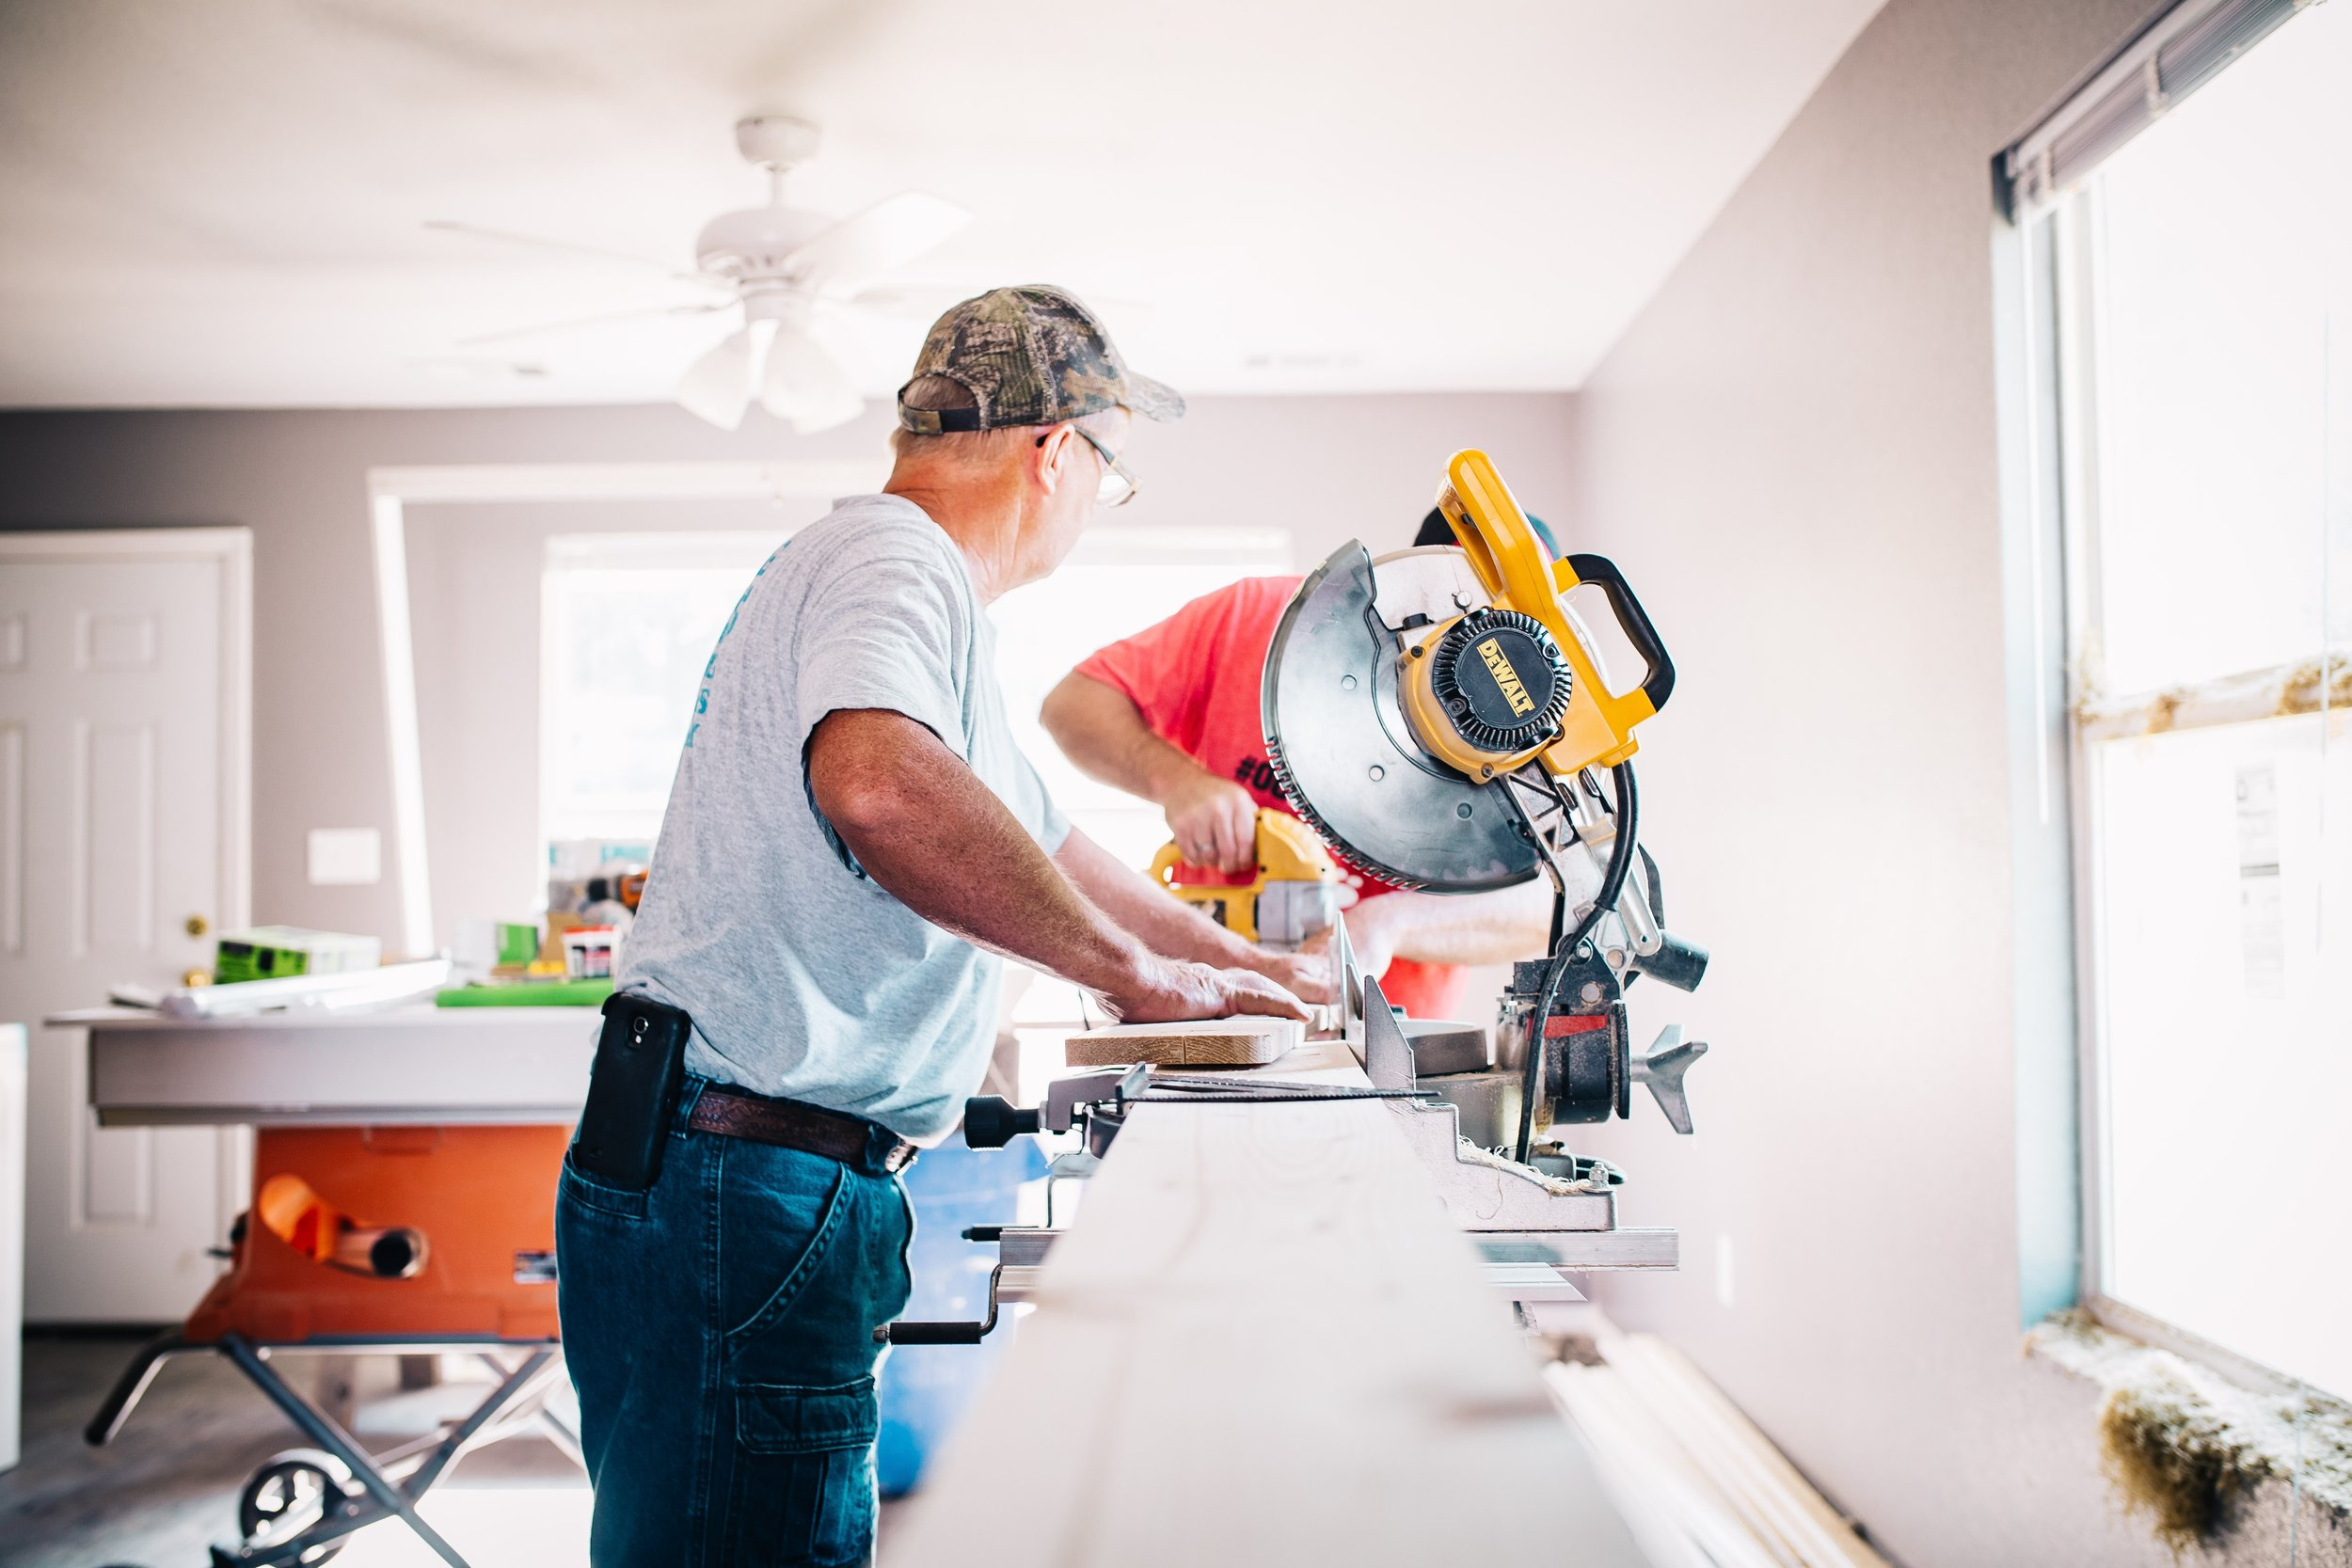 workers comp  - An injured worker never needs to prove that his employer was negligent or did something that directly caused the work injury. Learn more here.